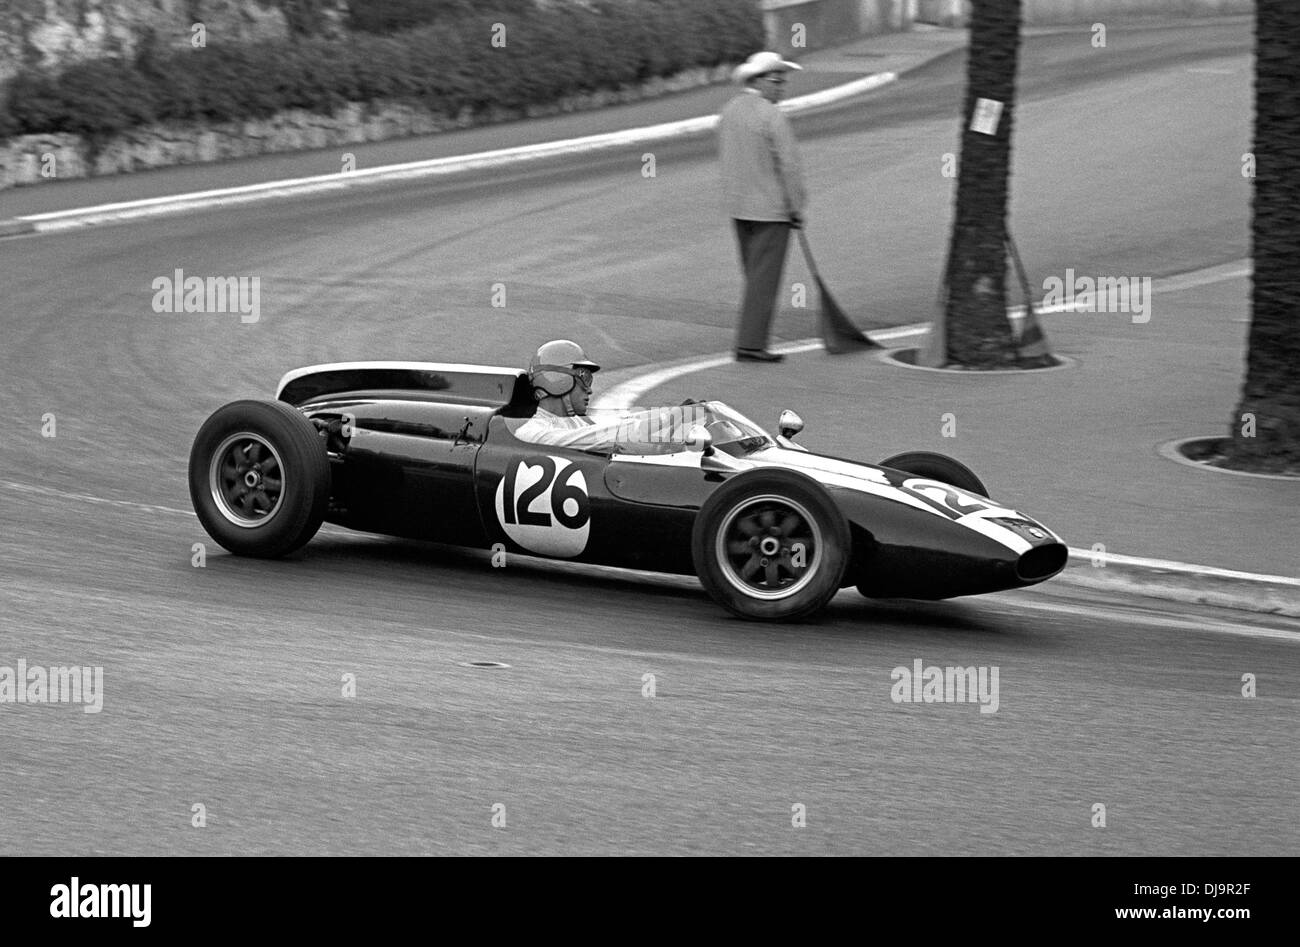 Tony Maggs in the Cooper T56 at the Station Hairpin, Formule Junior race at the Monaco Grand Prix, 13 May 1961. - Stock Image